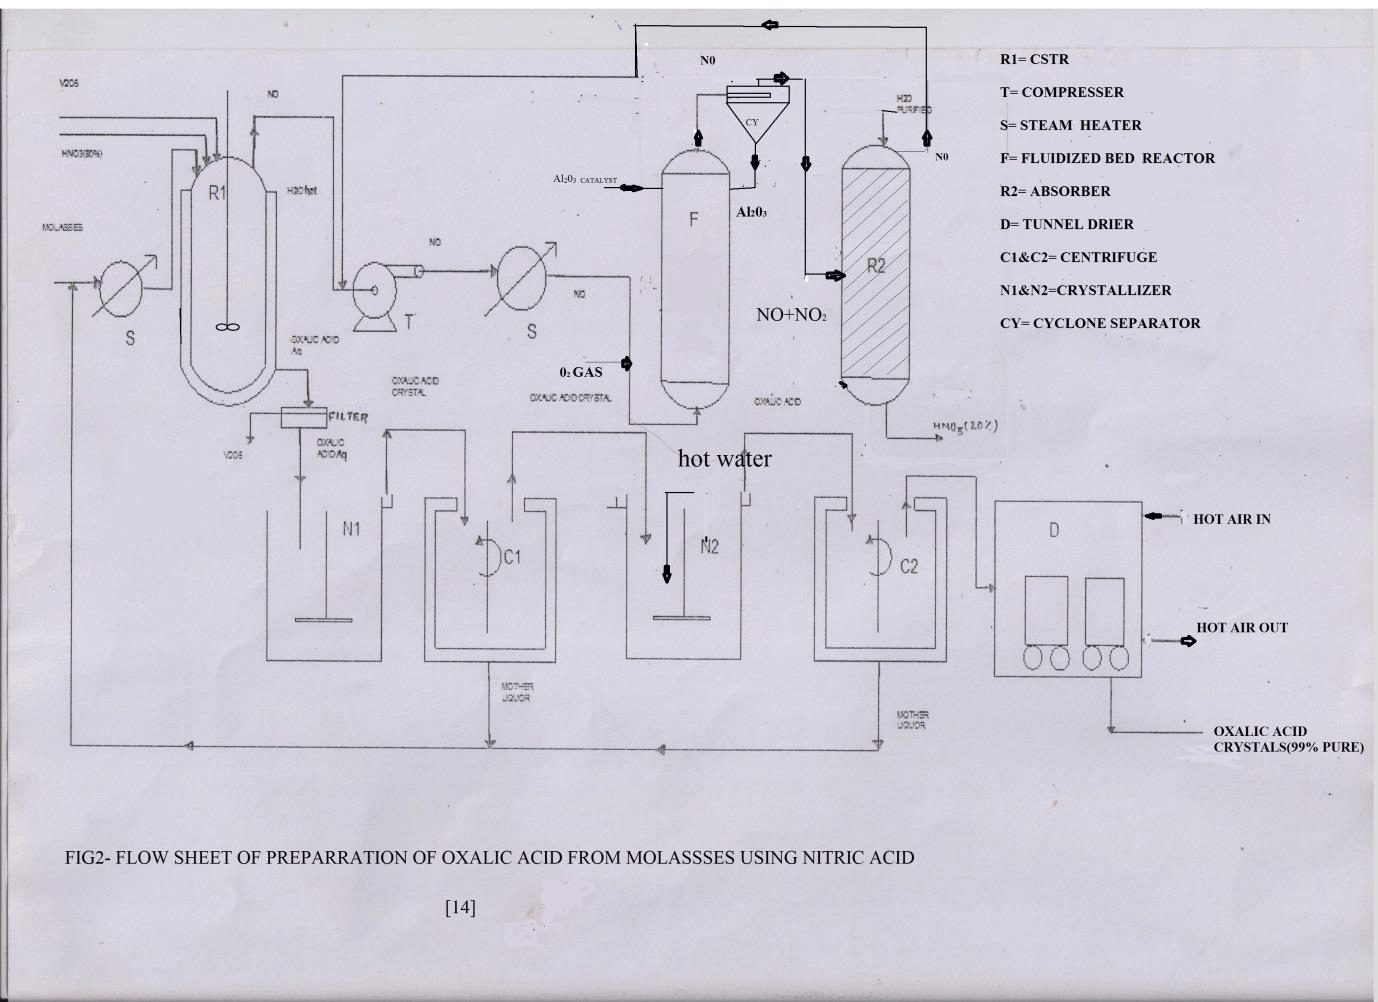 Preparation Of Oxalic Acid From Molasses